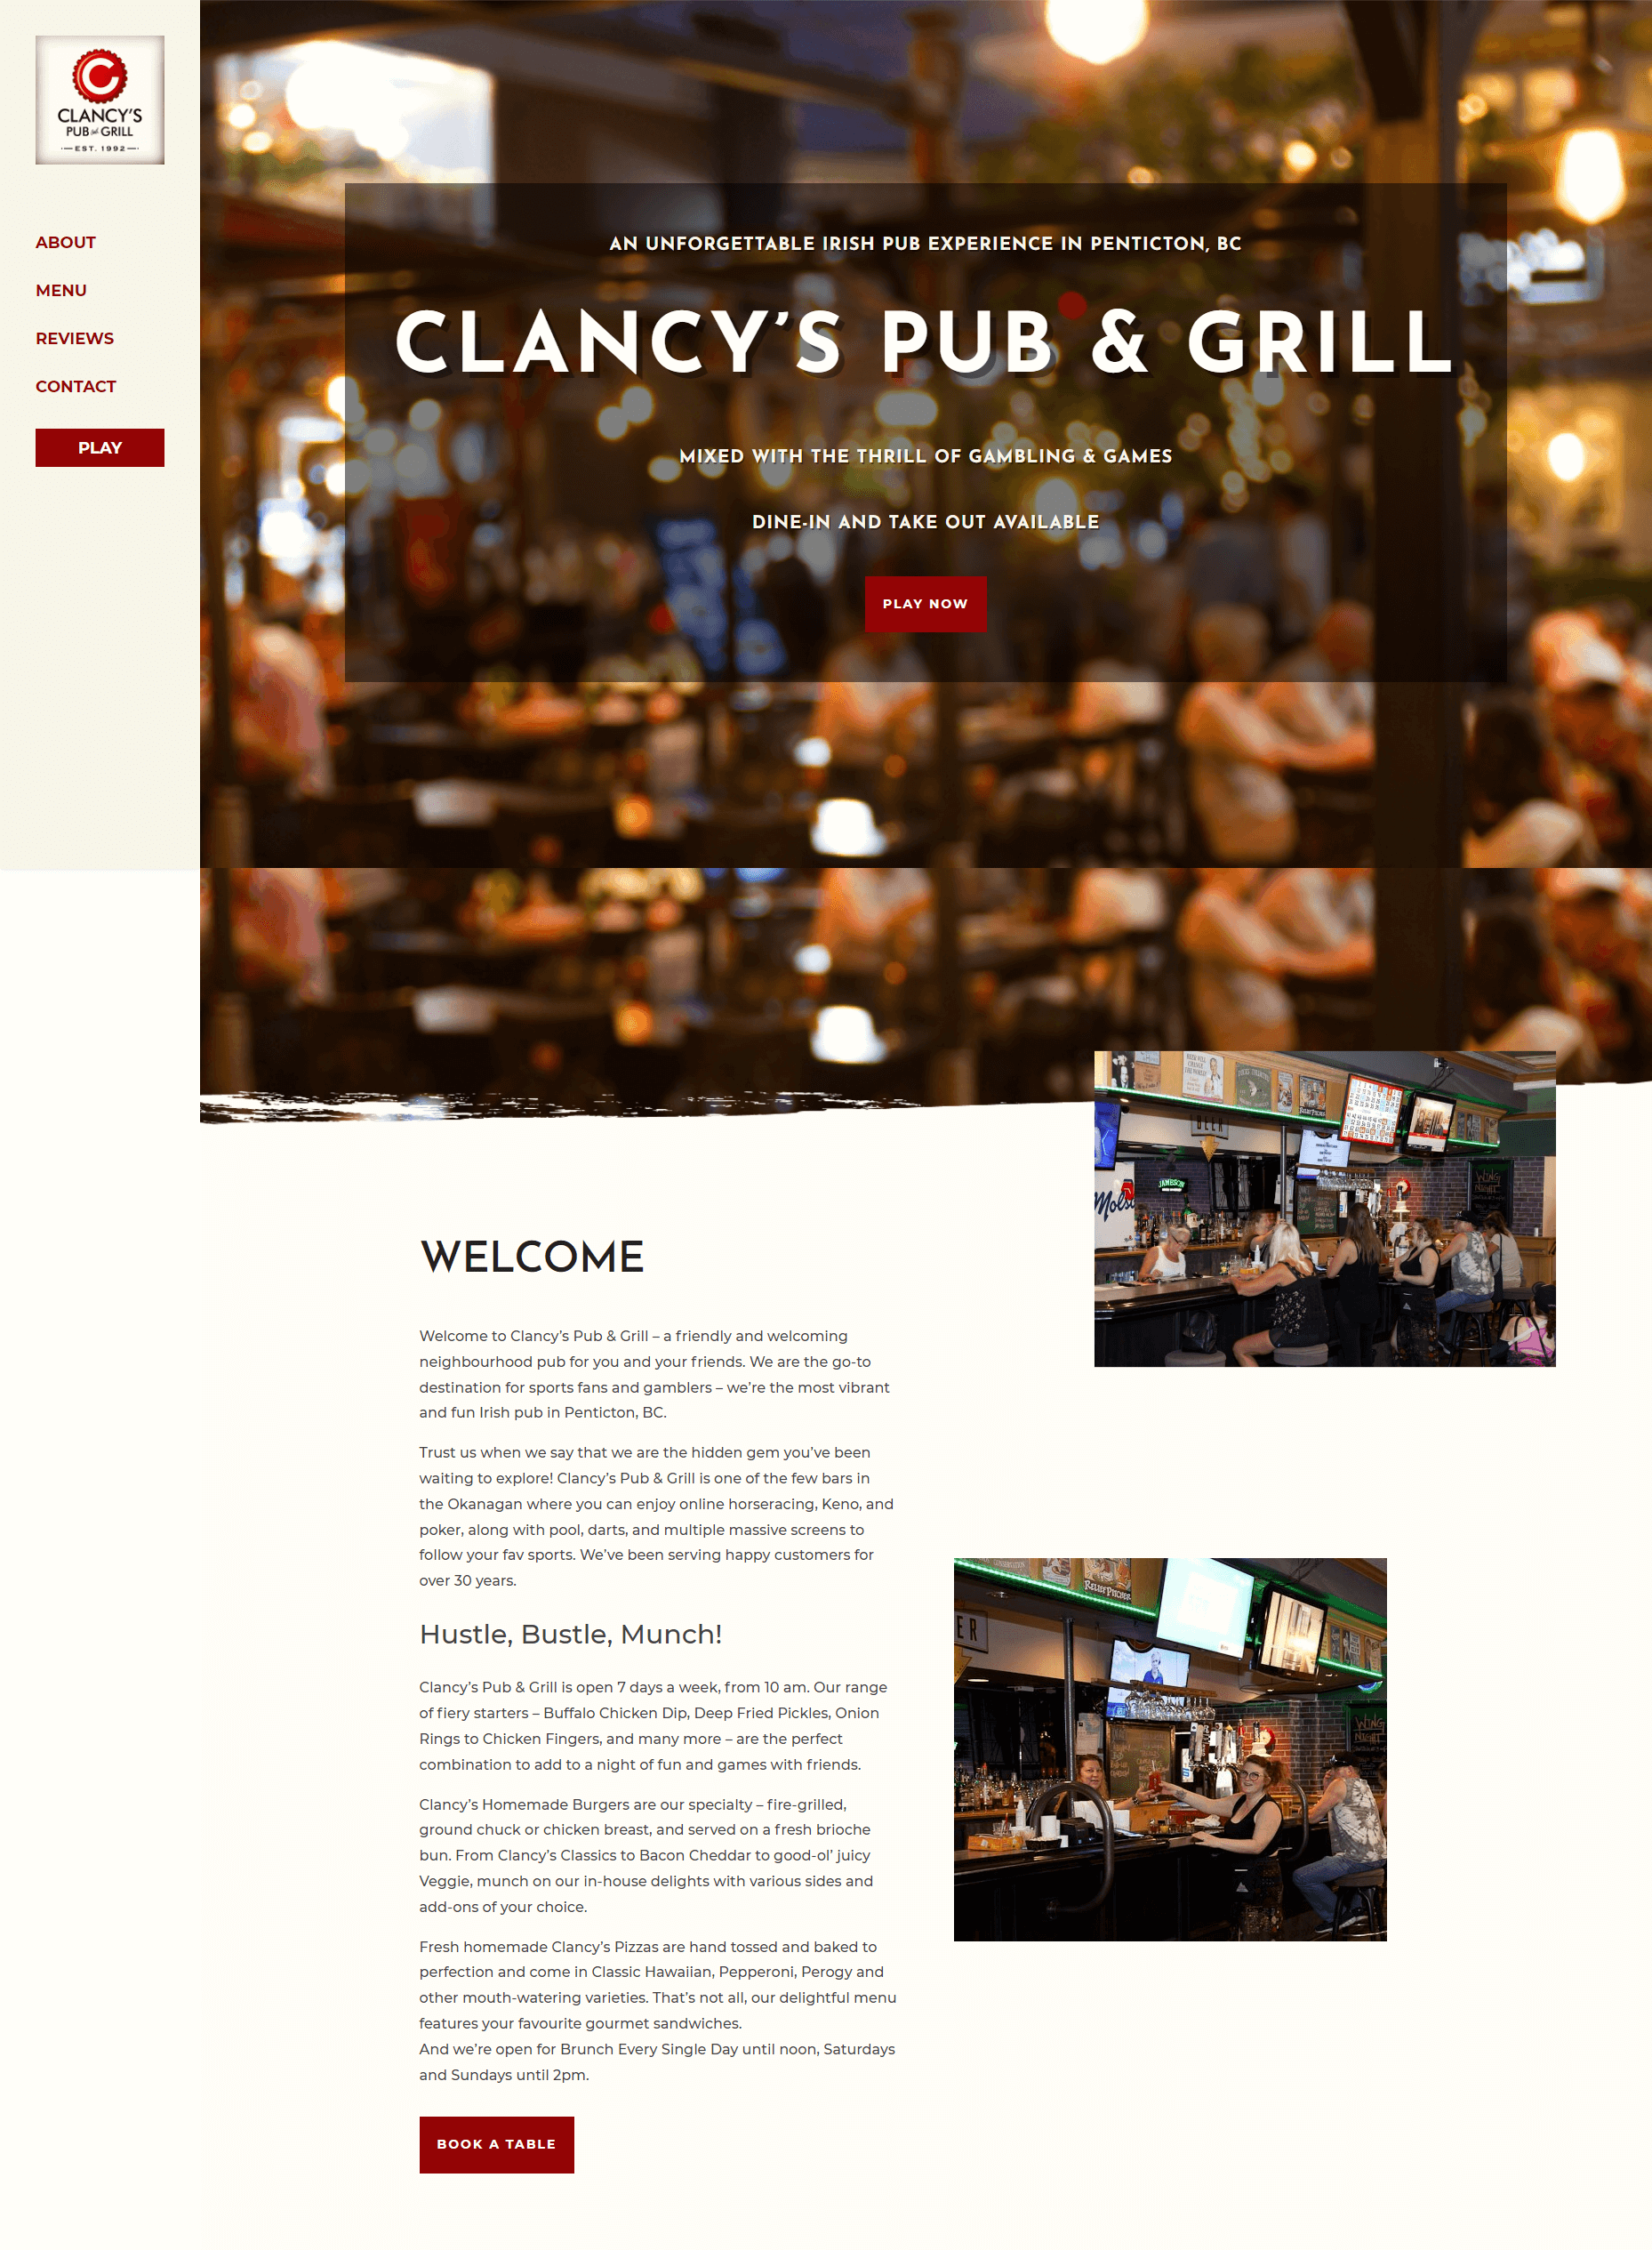 Clancy's Pub and Grill